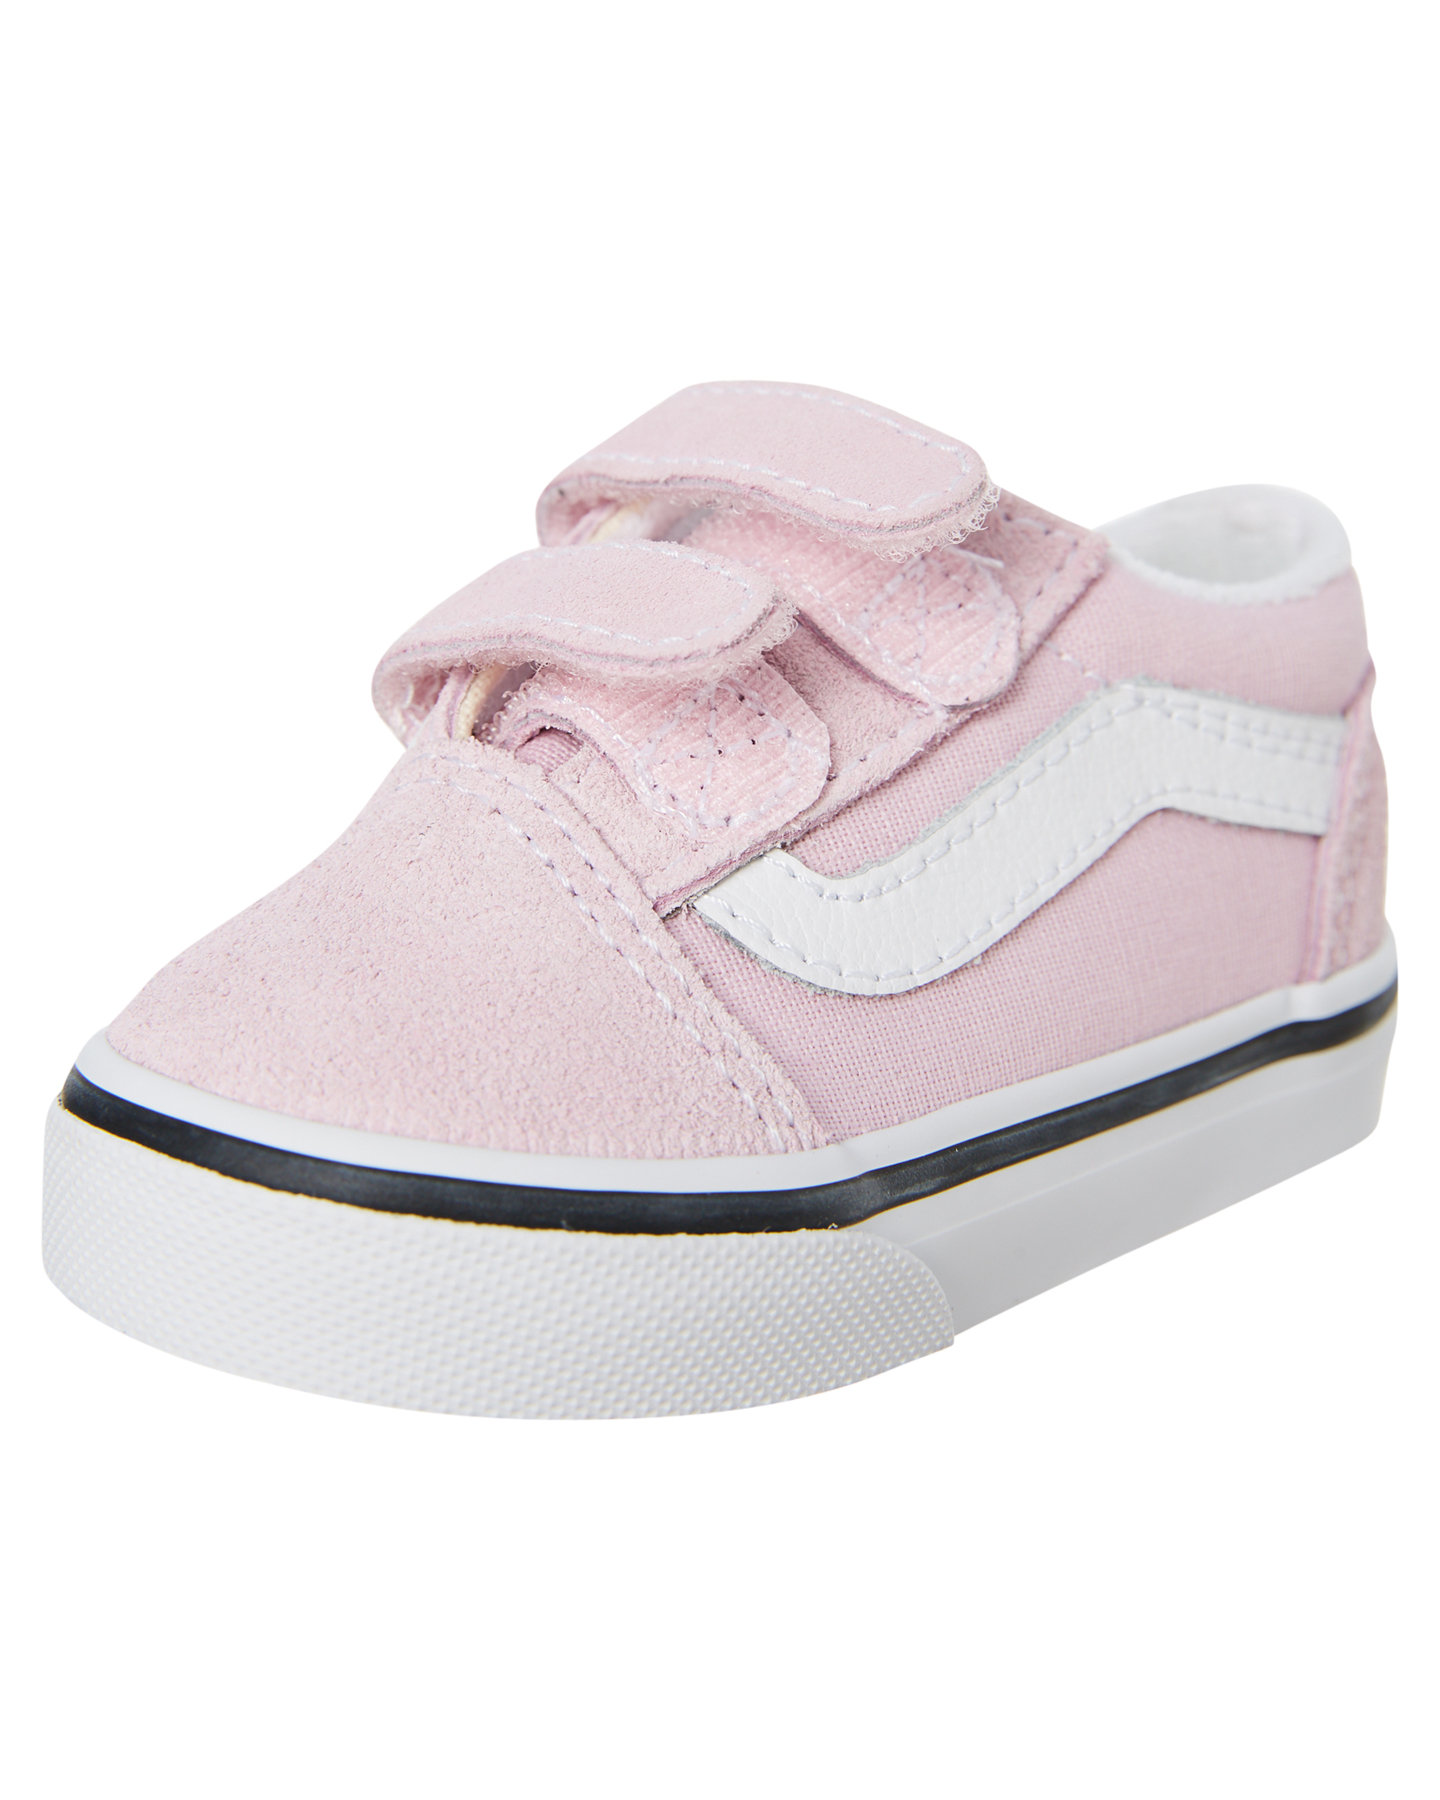 New-Vans-Girls-Kids-Old-Skool-V-Shoe-Rubber-Canvas-Black thumbnail 8